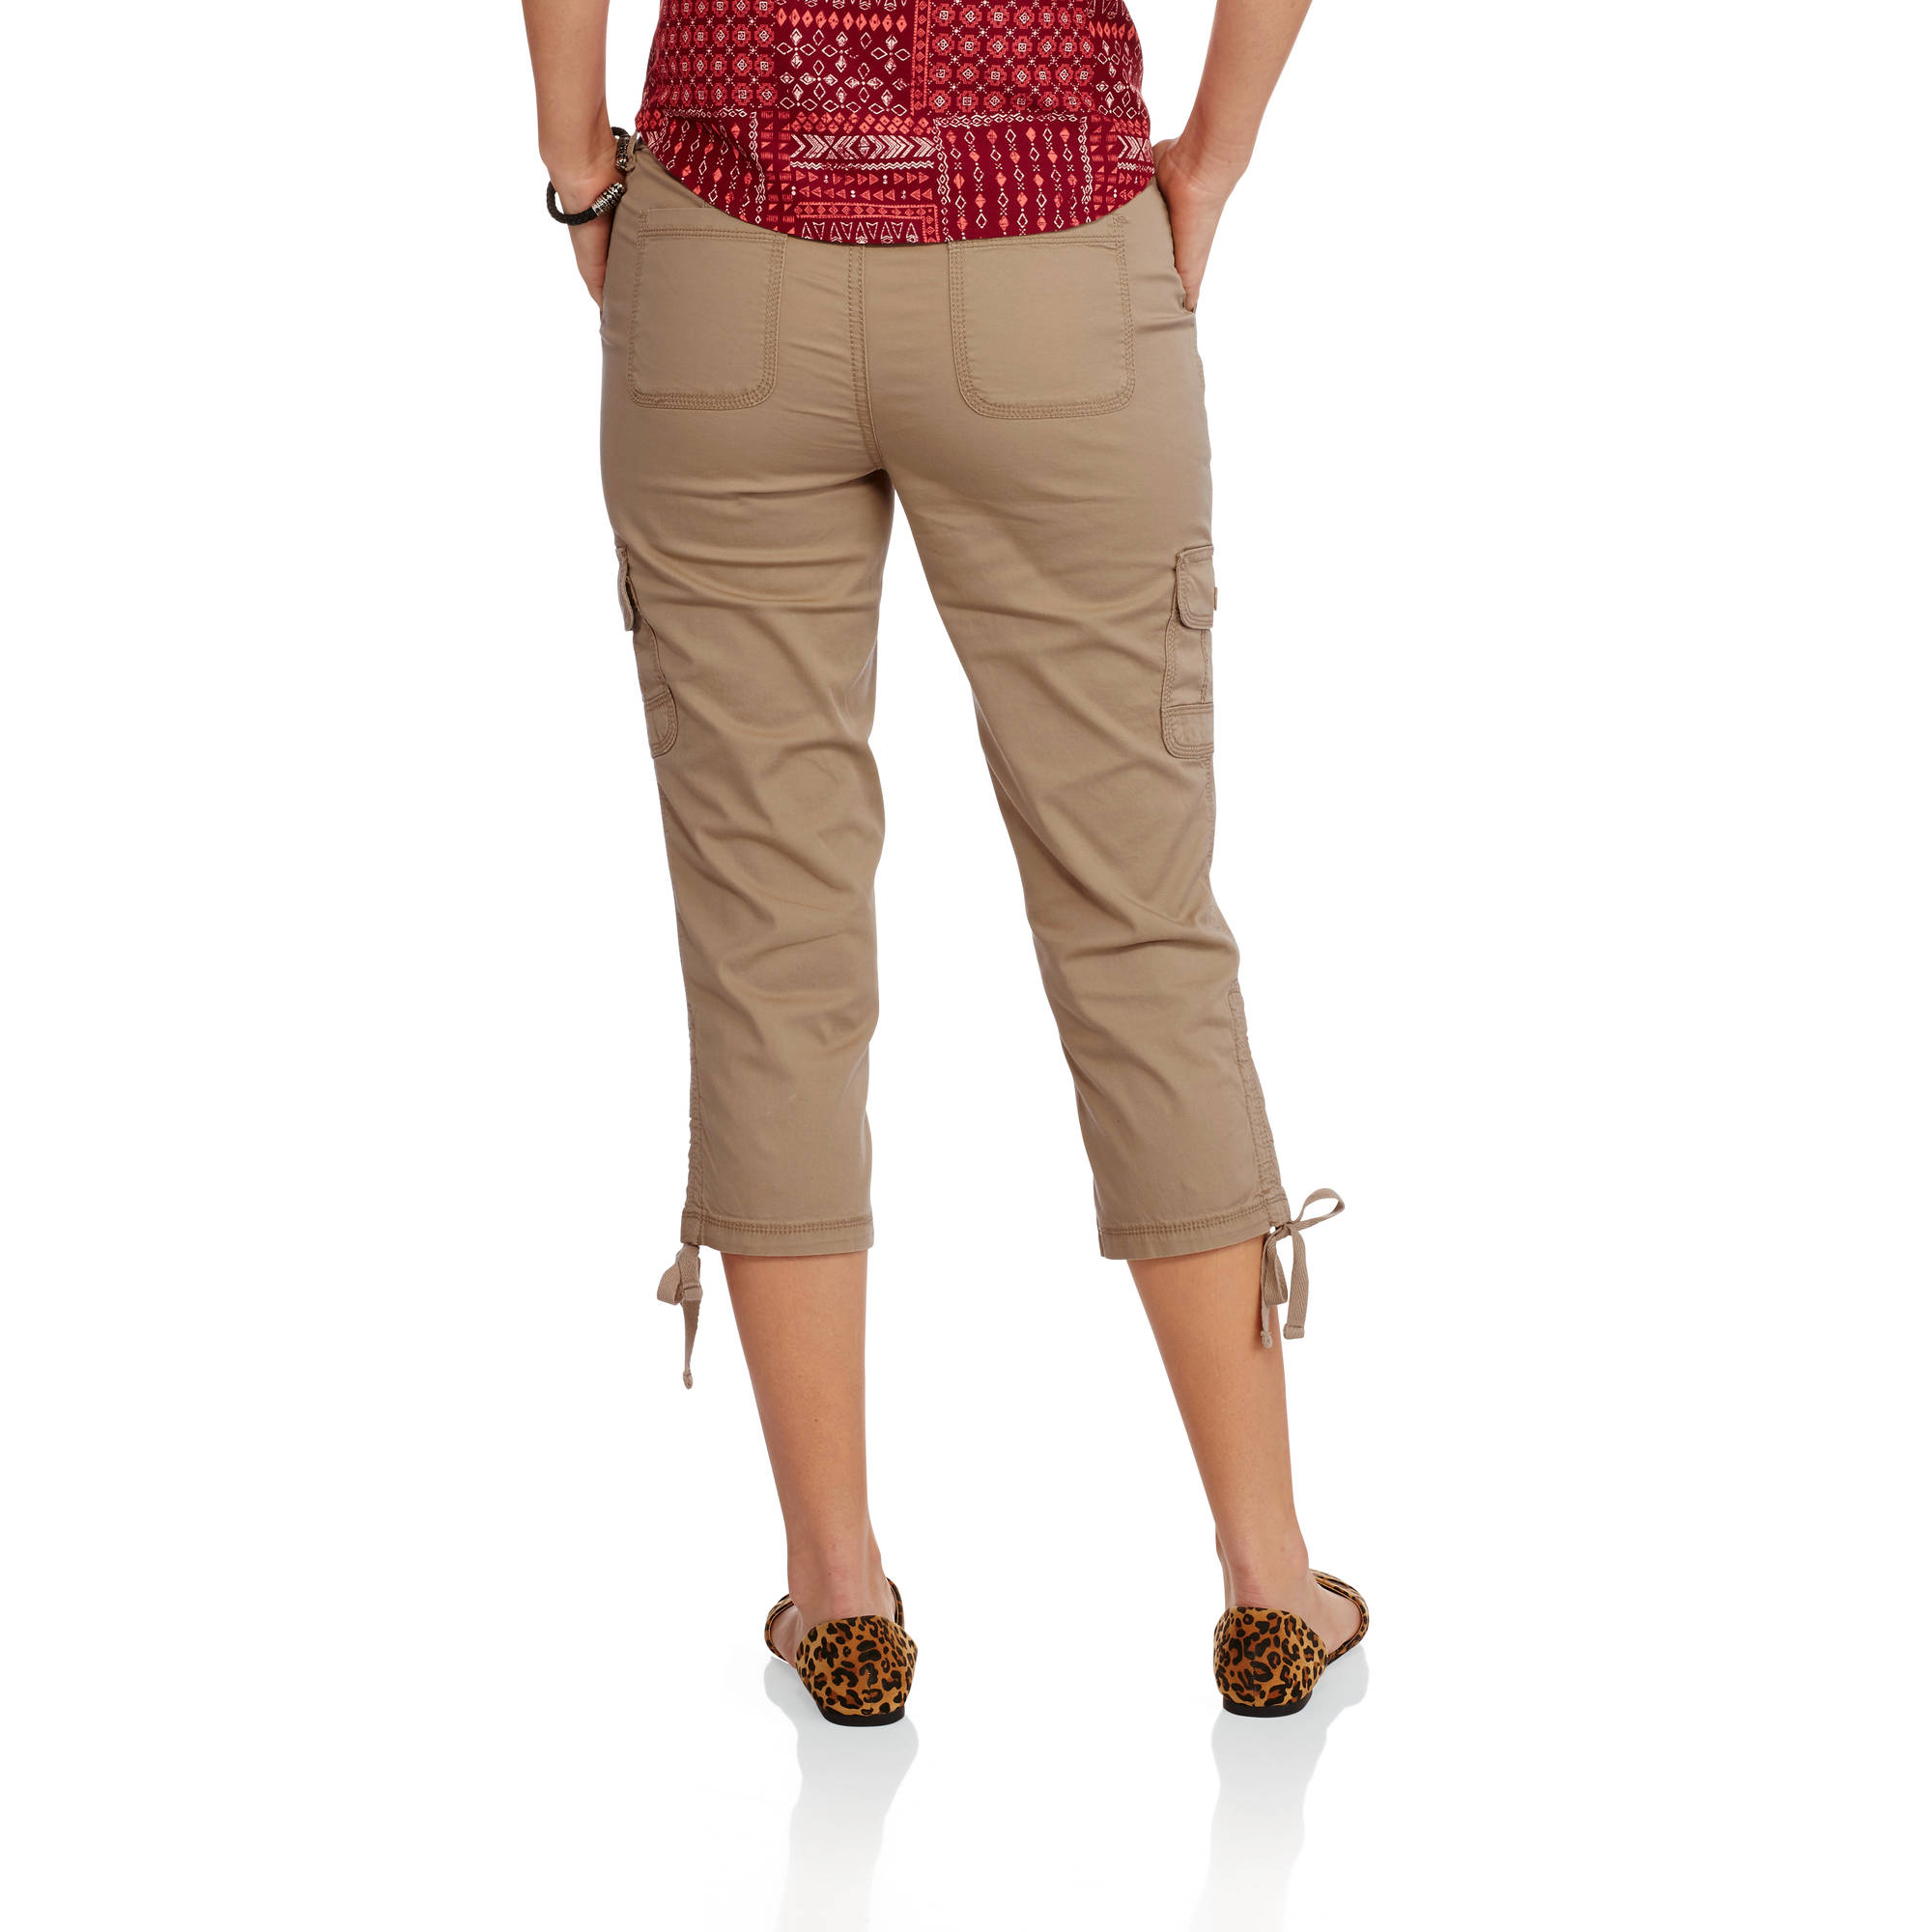 58ea56f3f86f2 Faded Glory - Women s Cargo Capri Pants - Walmart.com